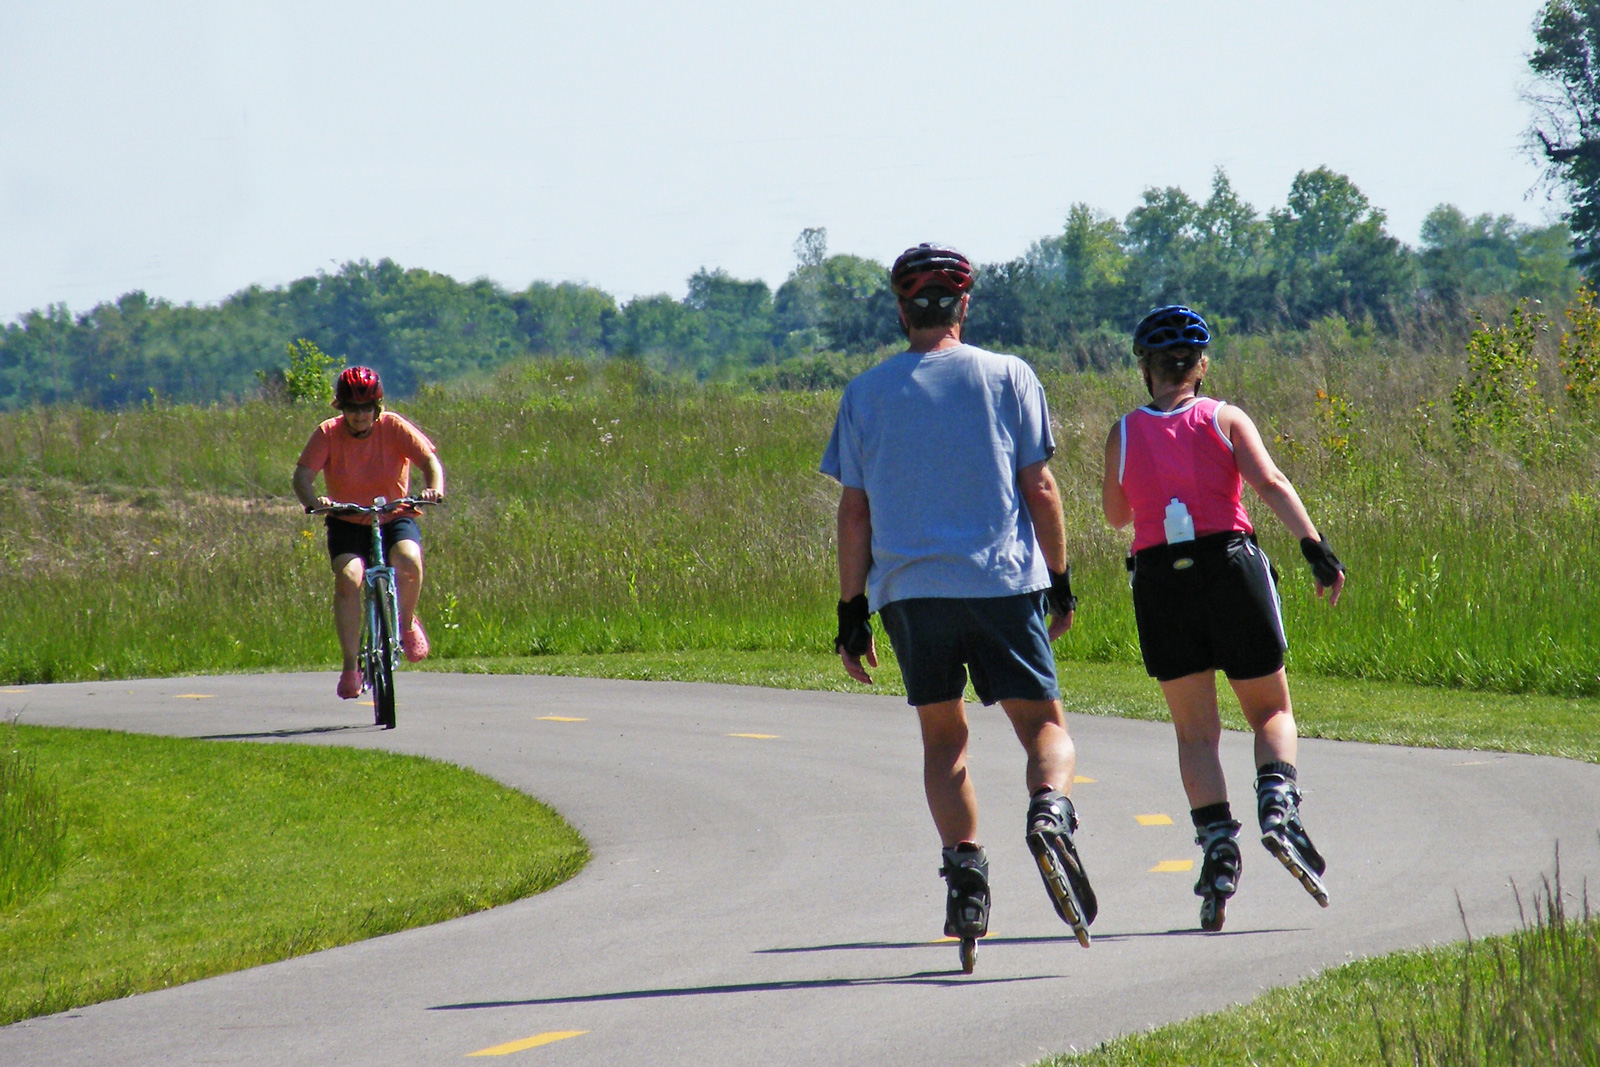 Roller-bladers and a cyclist about to pass each other on the Blacklick Creek Greenway Trail in the north west part of Pickerington Ponds.